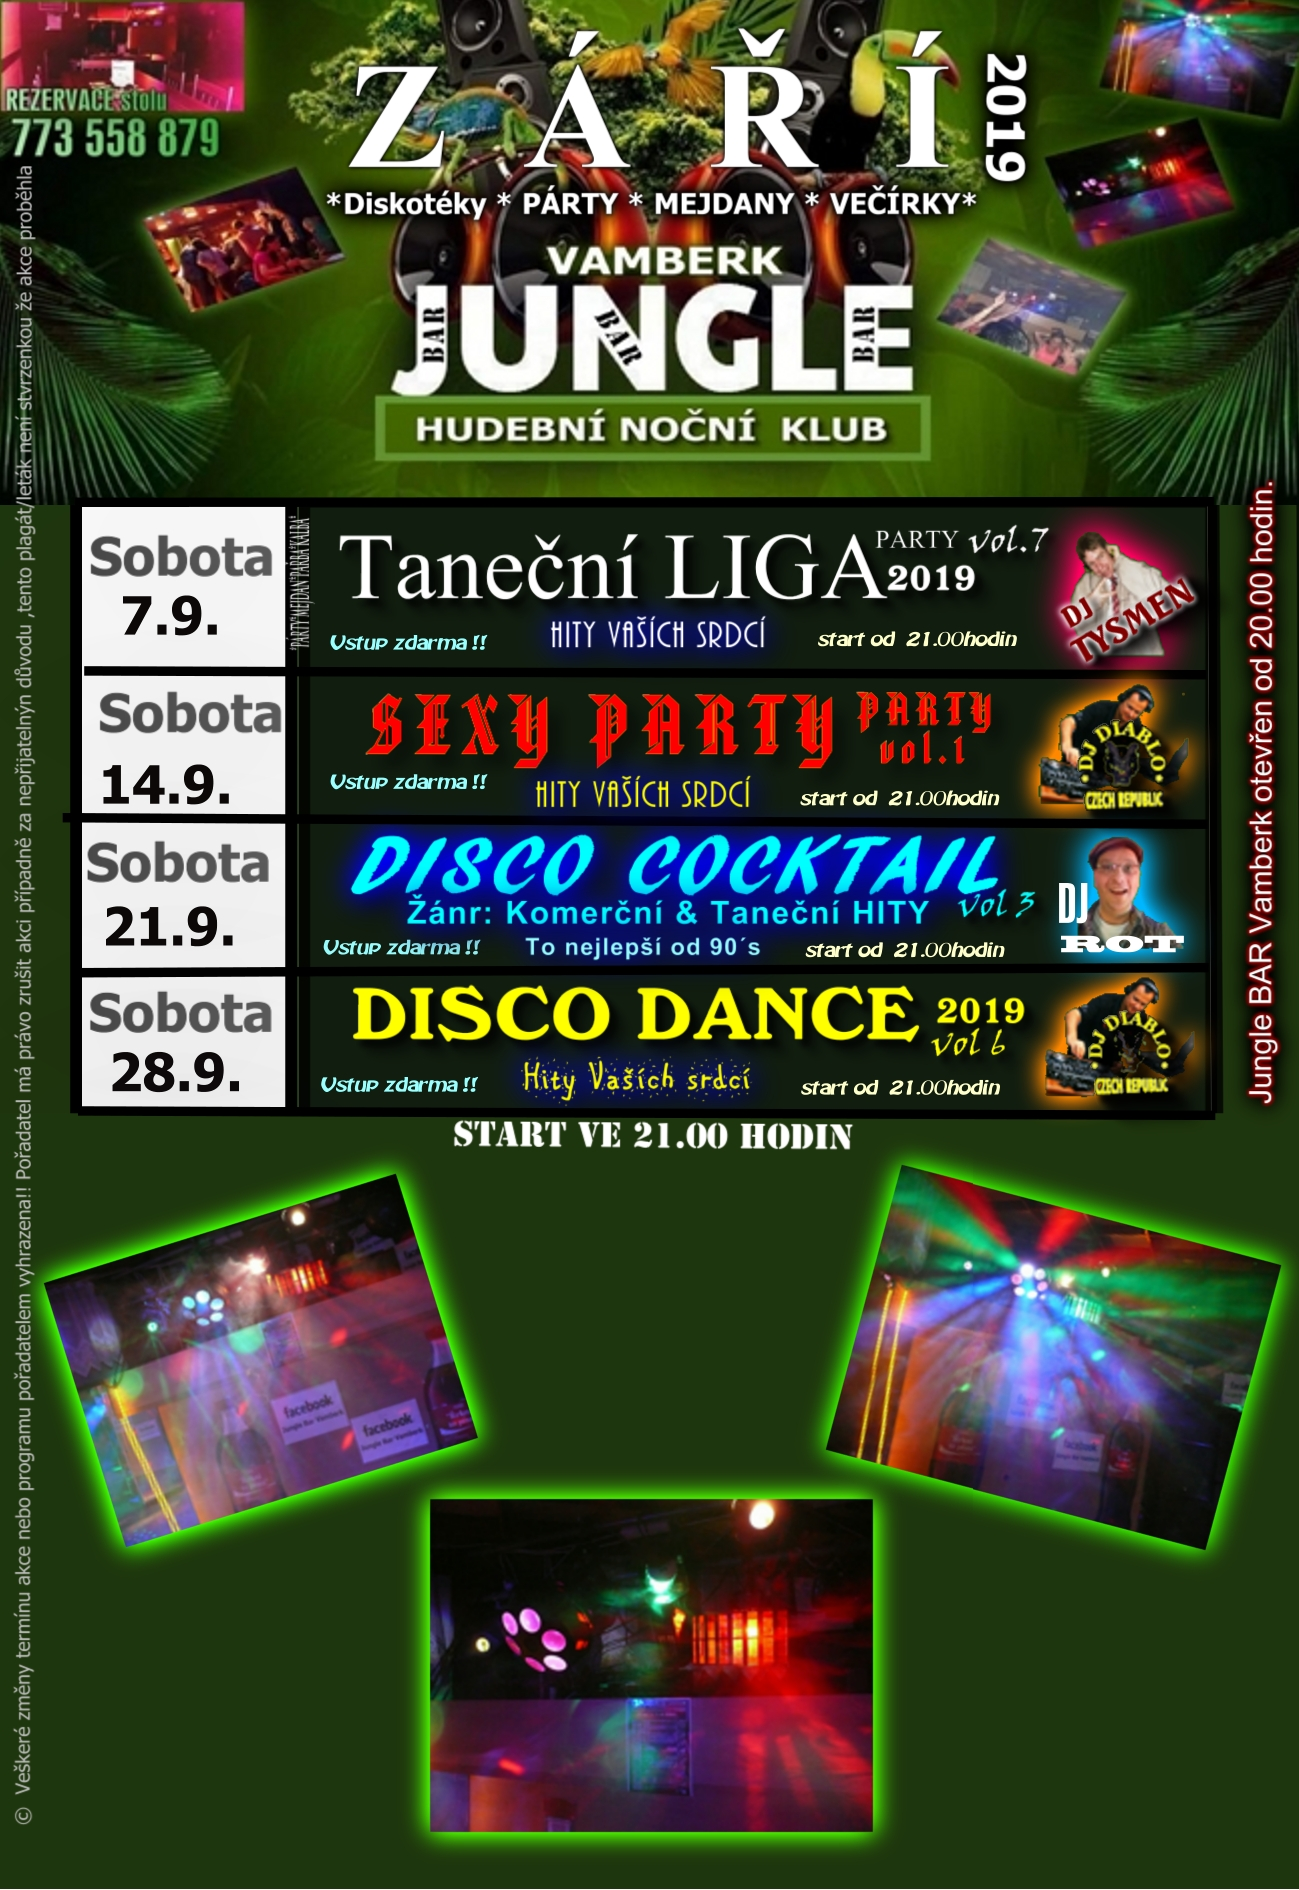 Jungle bar - program září